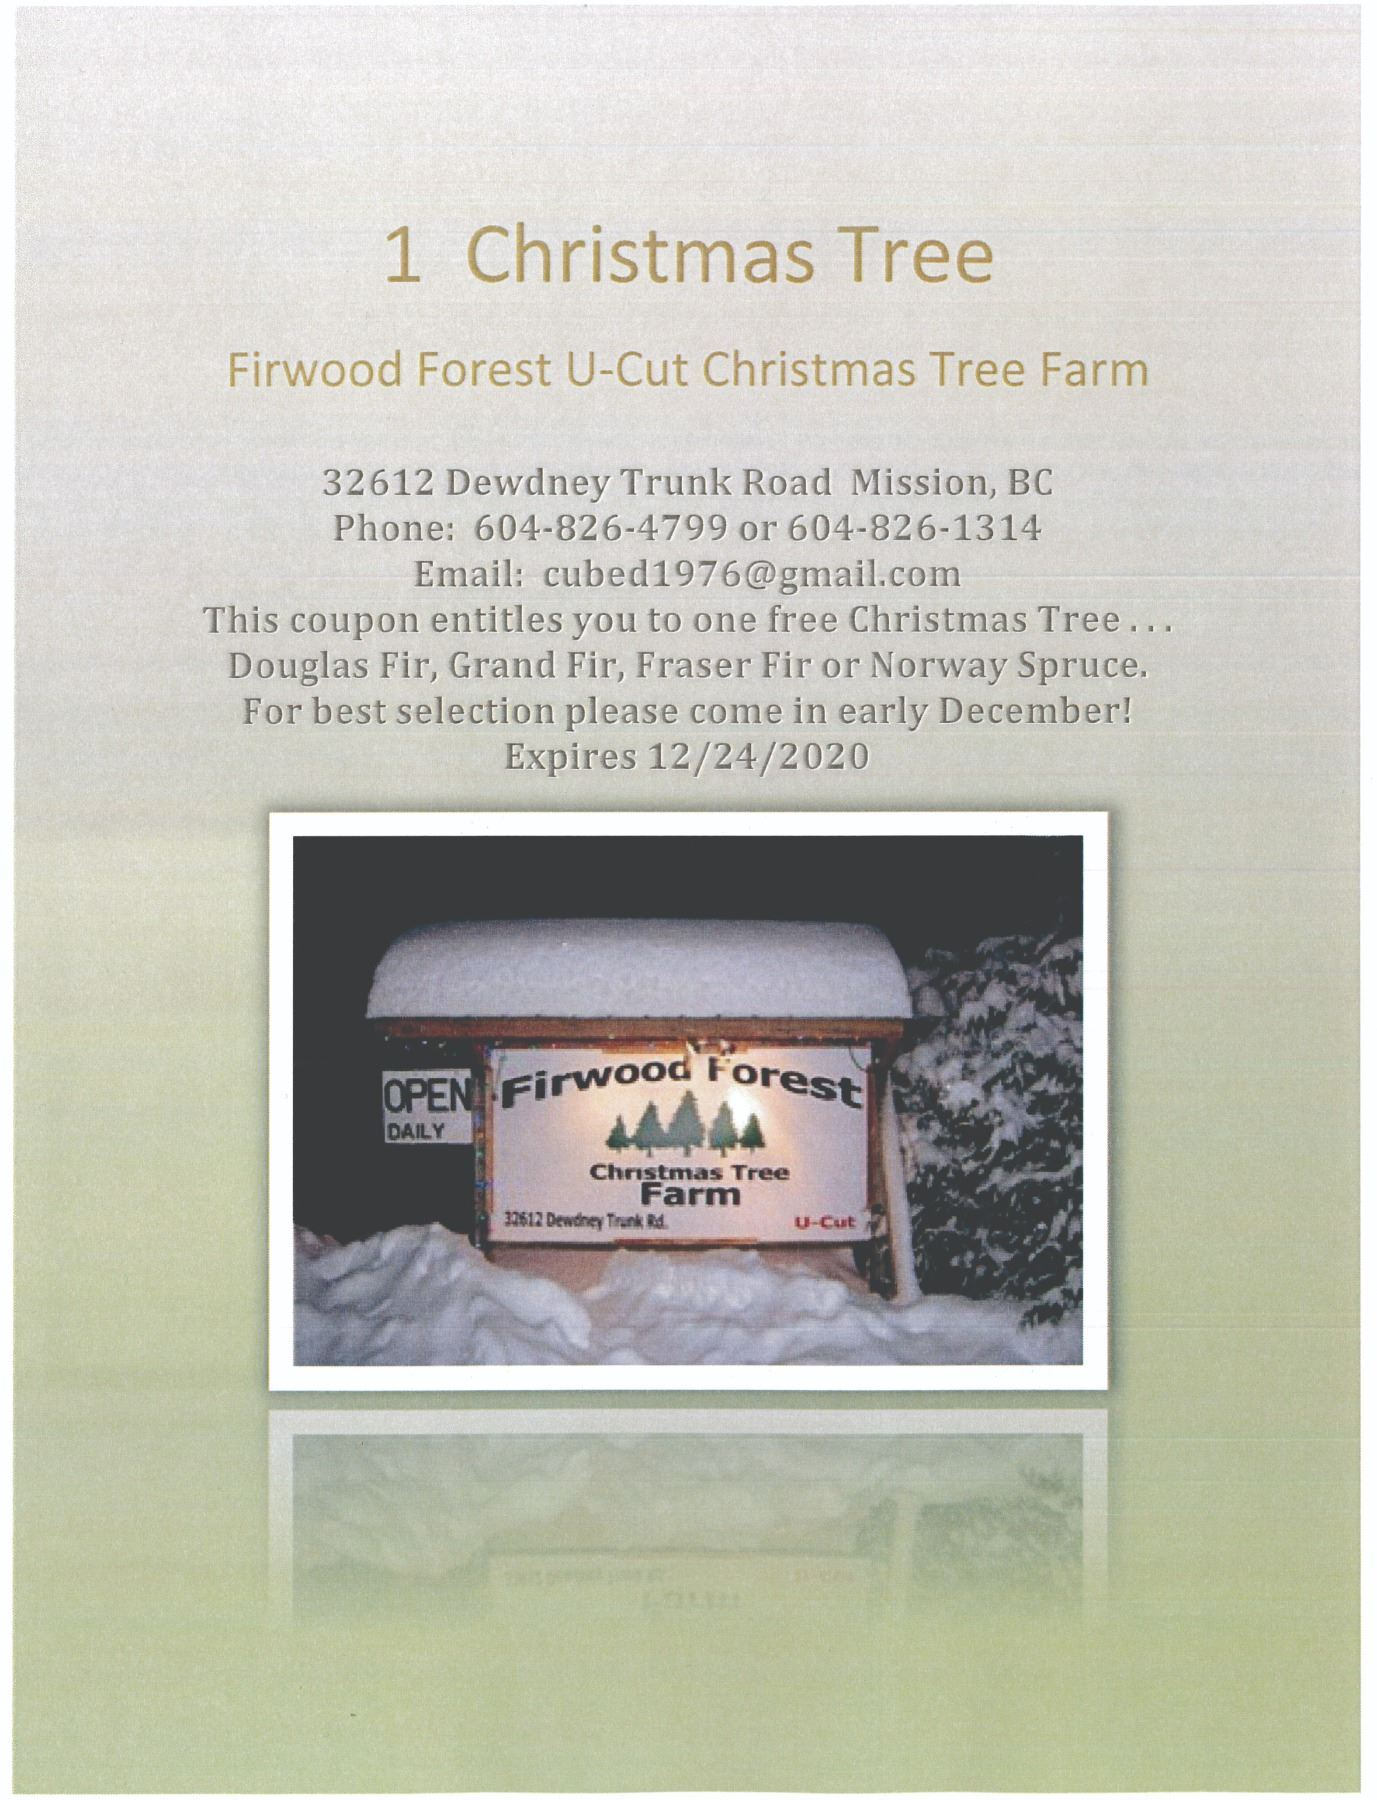 Firwood Forest U-Cut Christmas Tree Farm